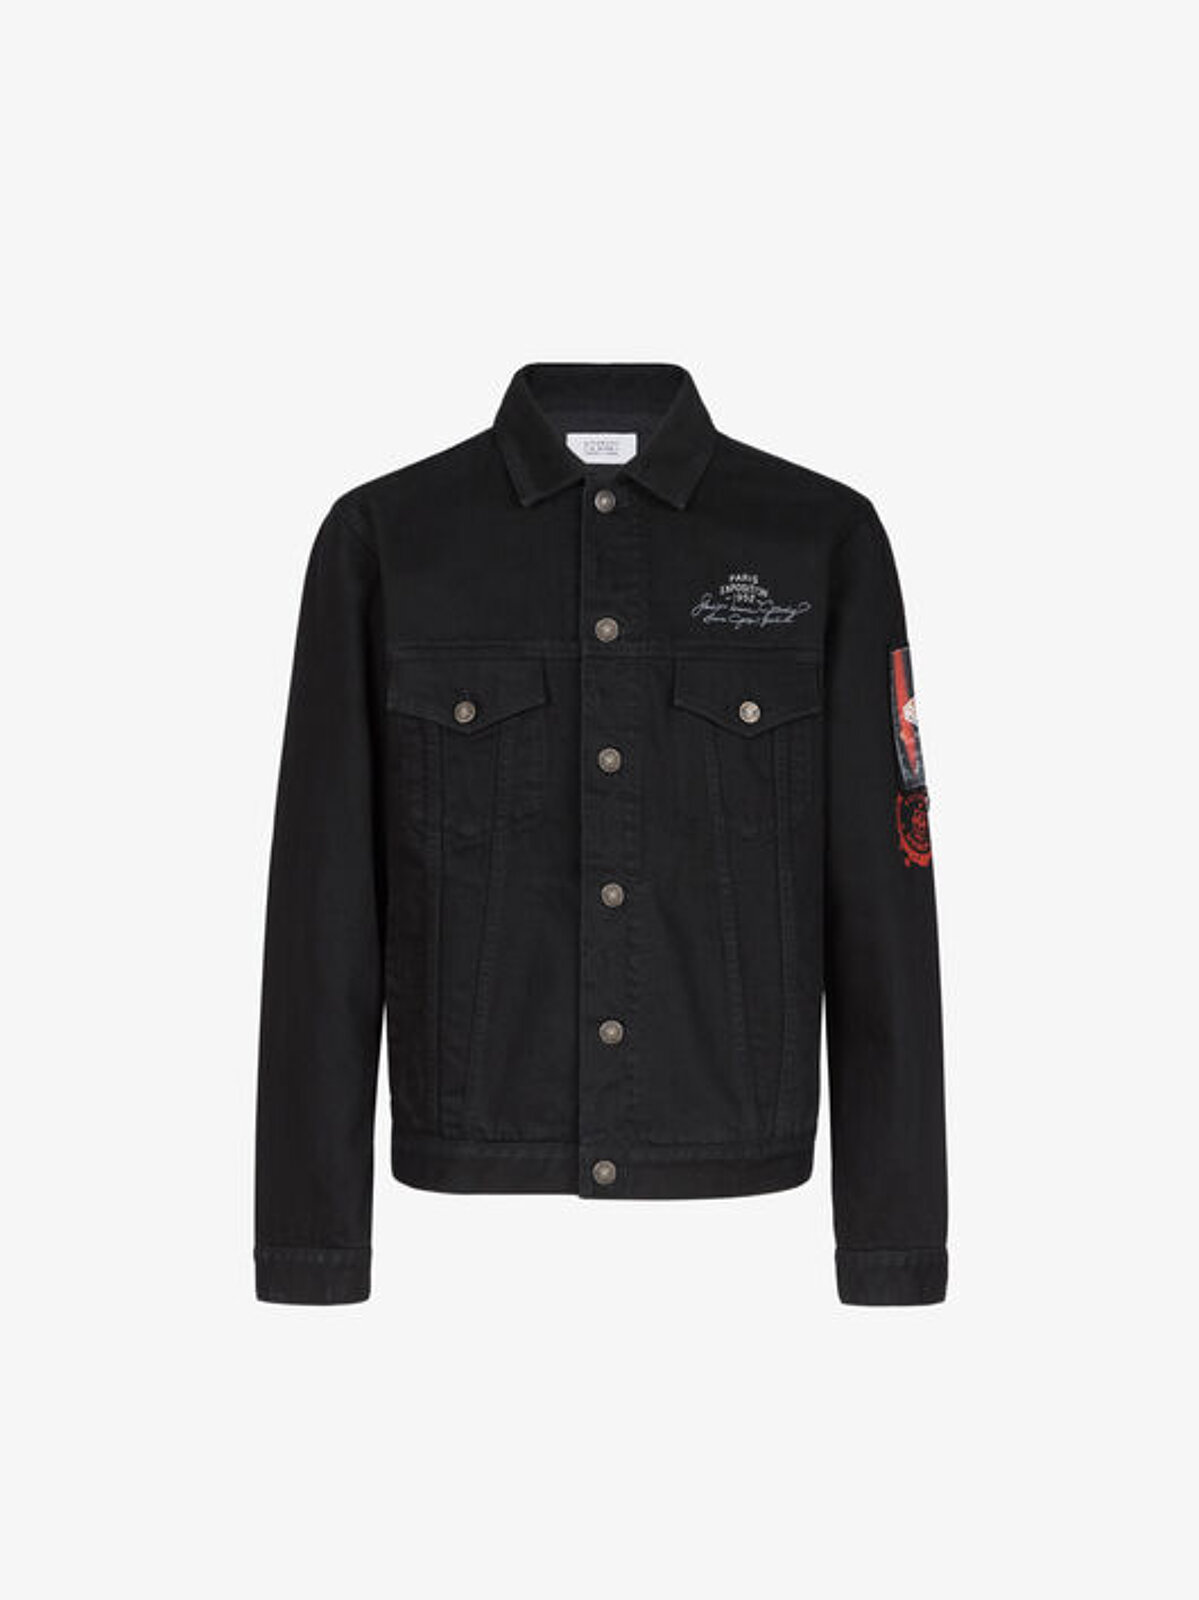 GIVENCHY denim jacket with applications - Givenchy